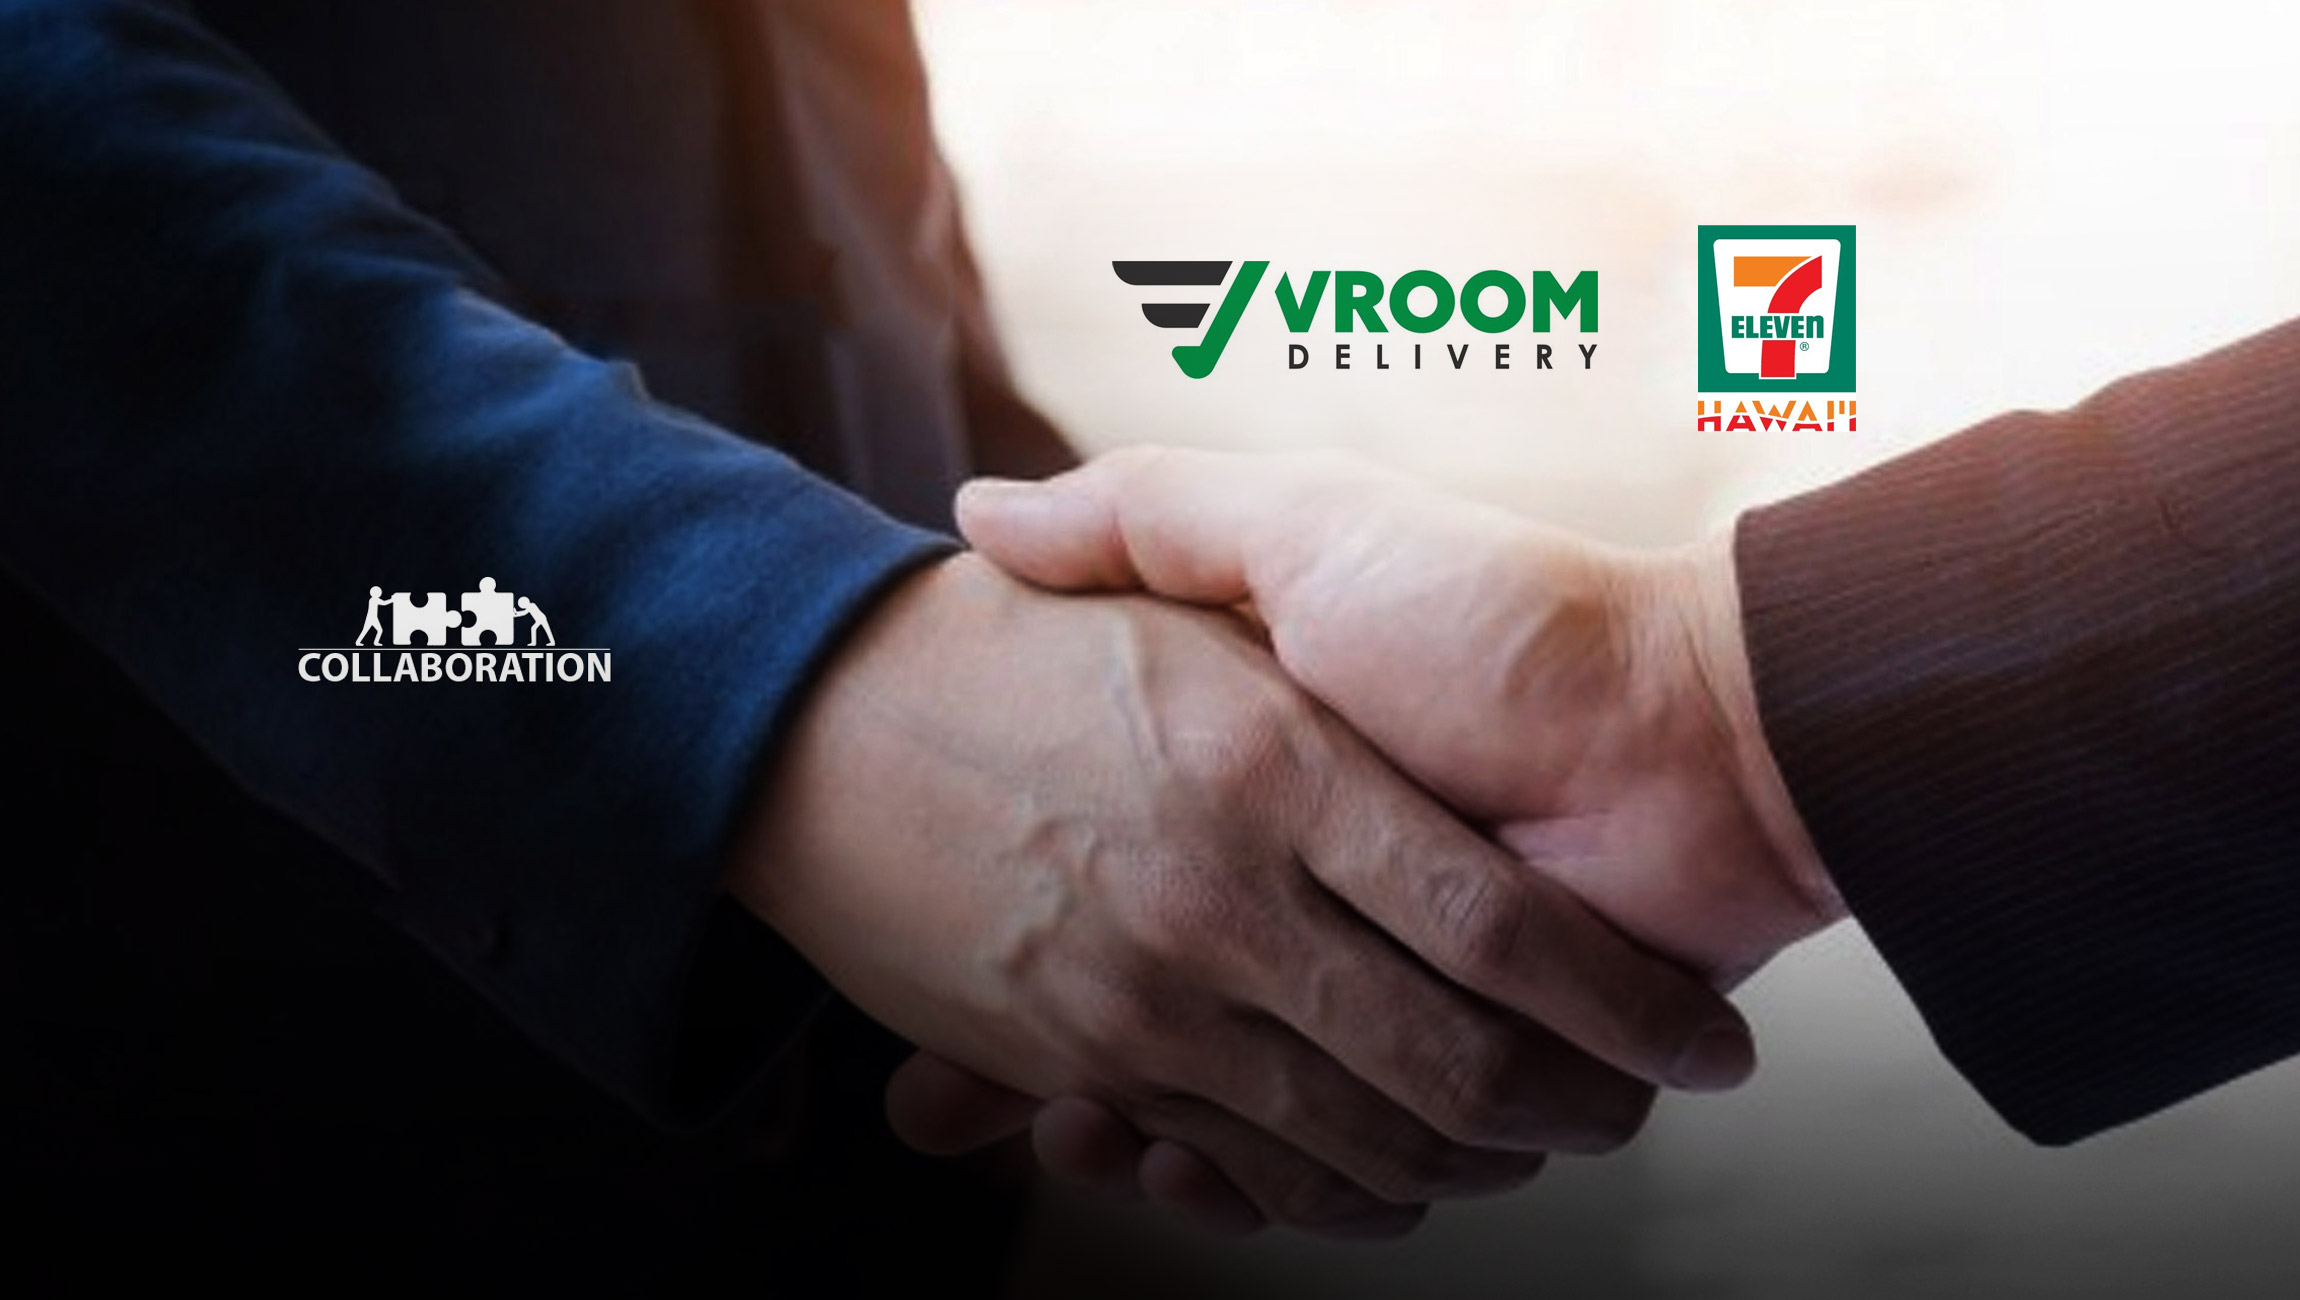 Vroom Delivery Partners with 7-Eleven Hawaii to Offer Customers eCommerce and Home Delivery